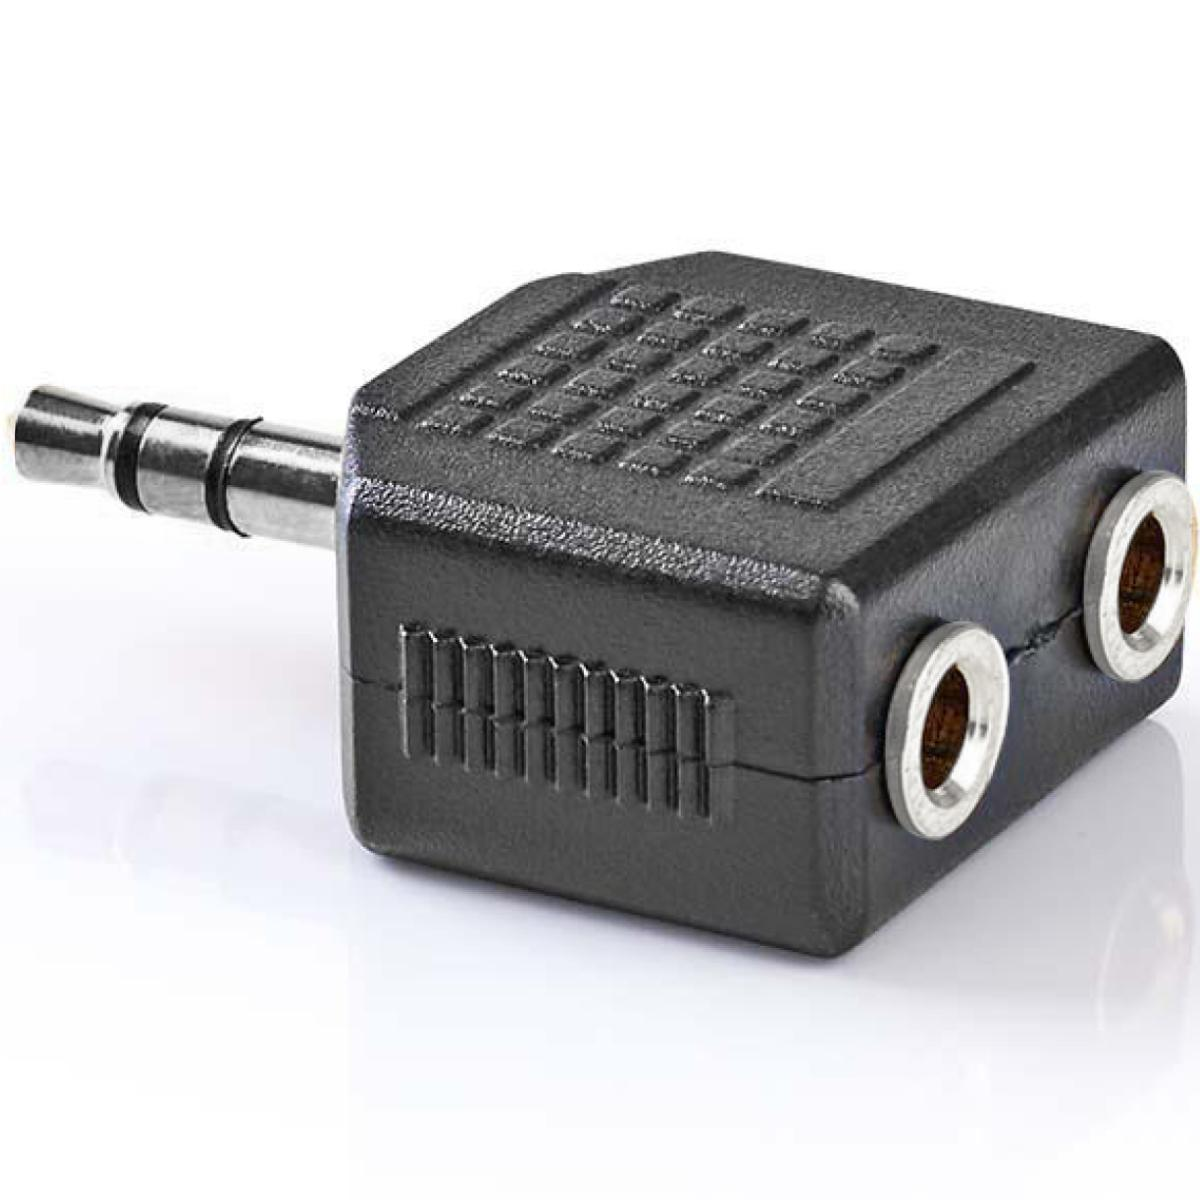 Jack Splitter 2x Stereo Jack 3.5mm Female